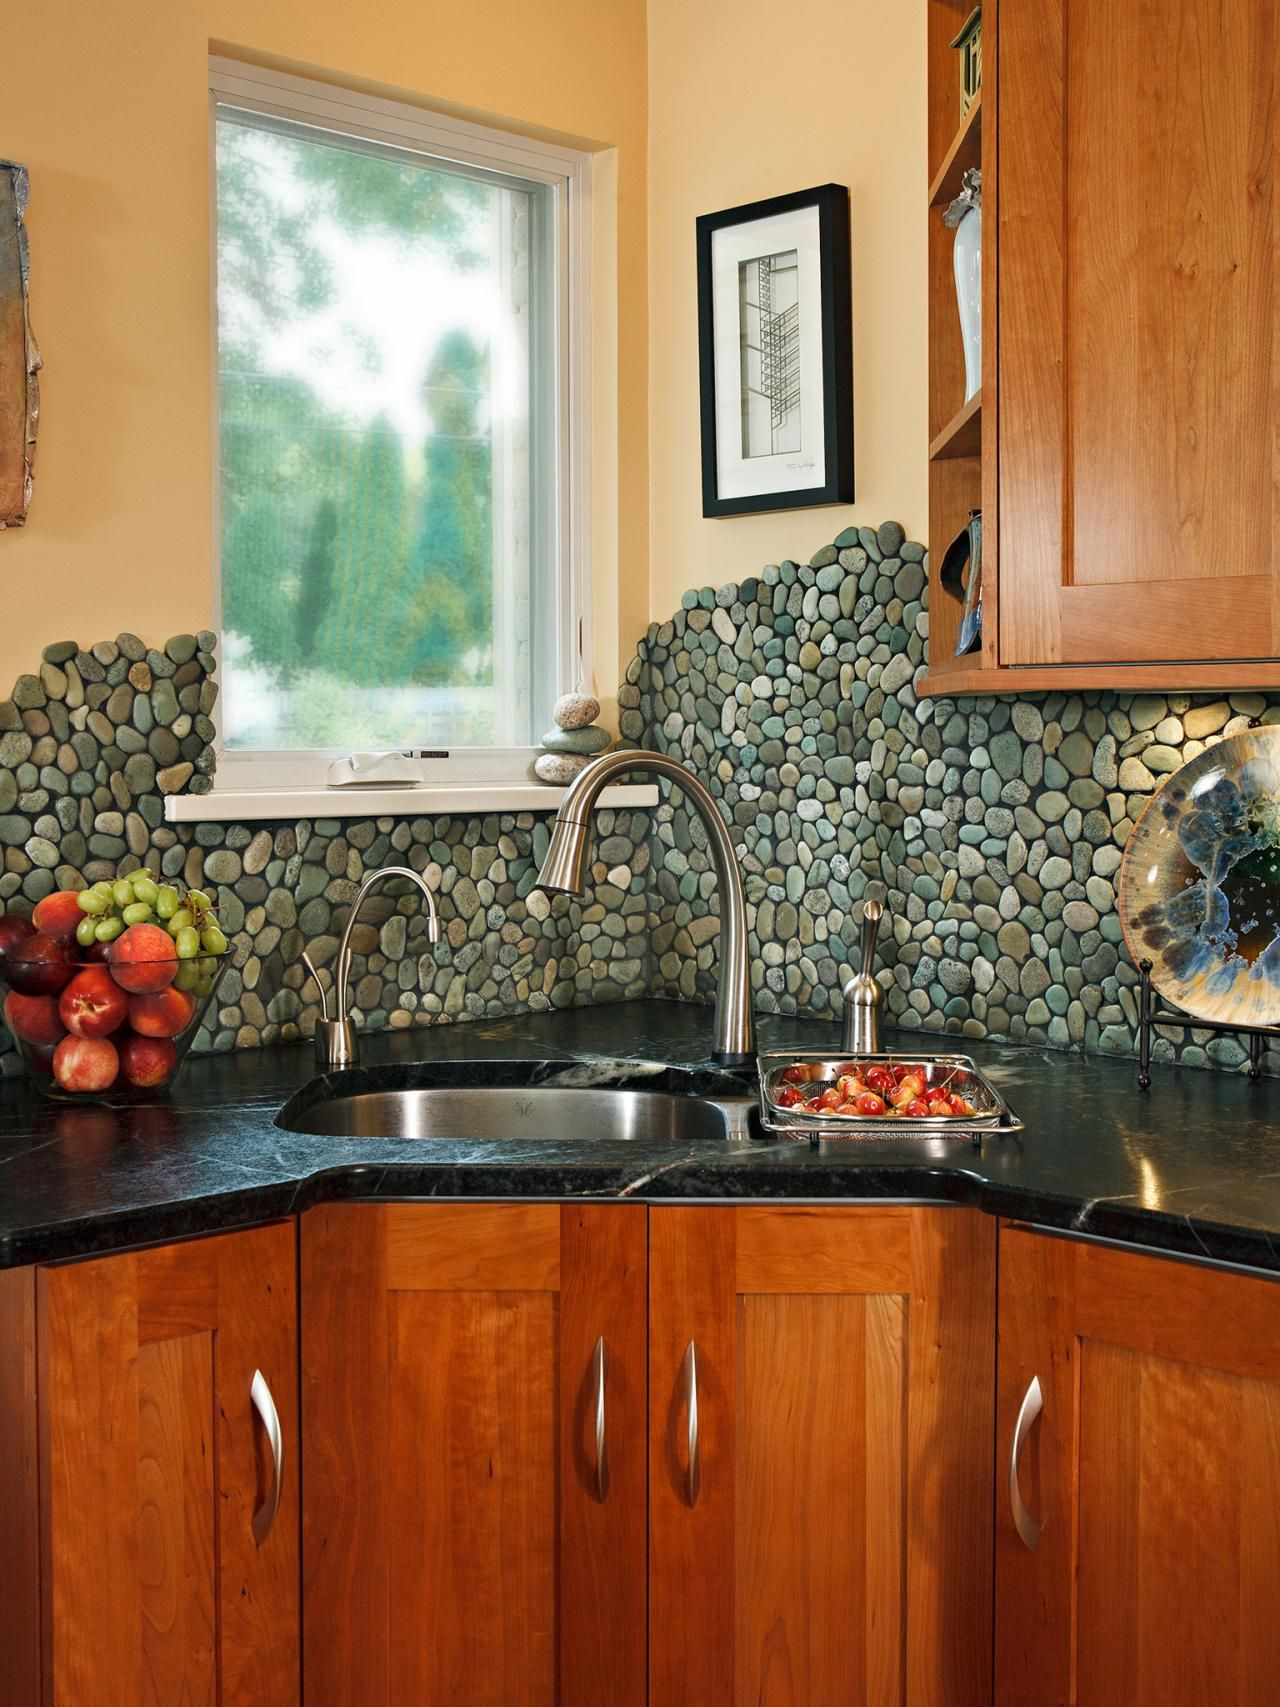 River Rock Pebbles Create A Unique Backsplash In This Kitchen You Can Get More Details By Clicking On The Image Homeimprovement